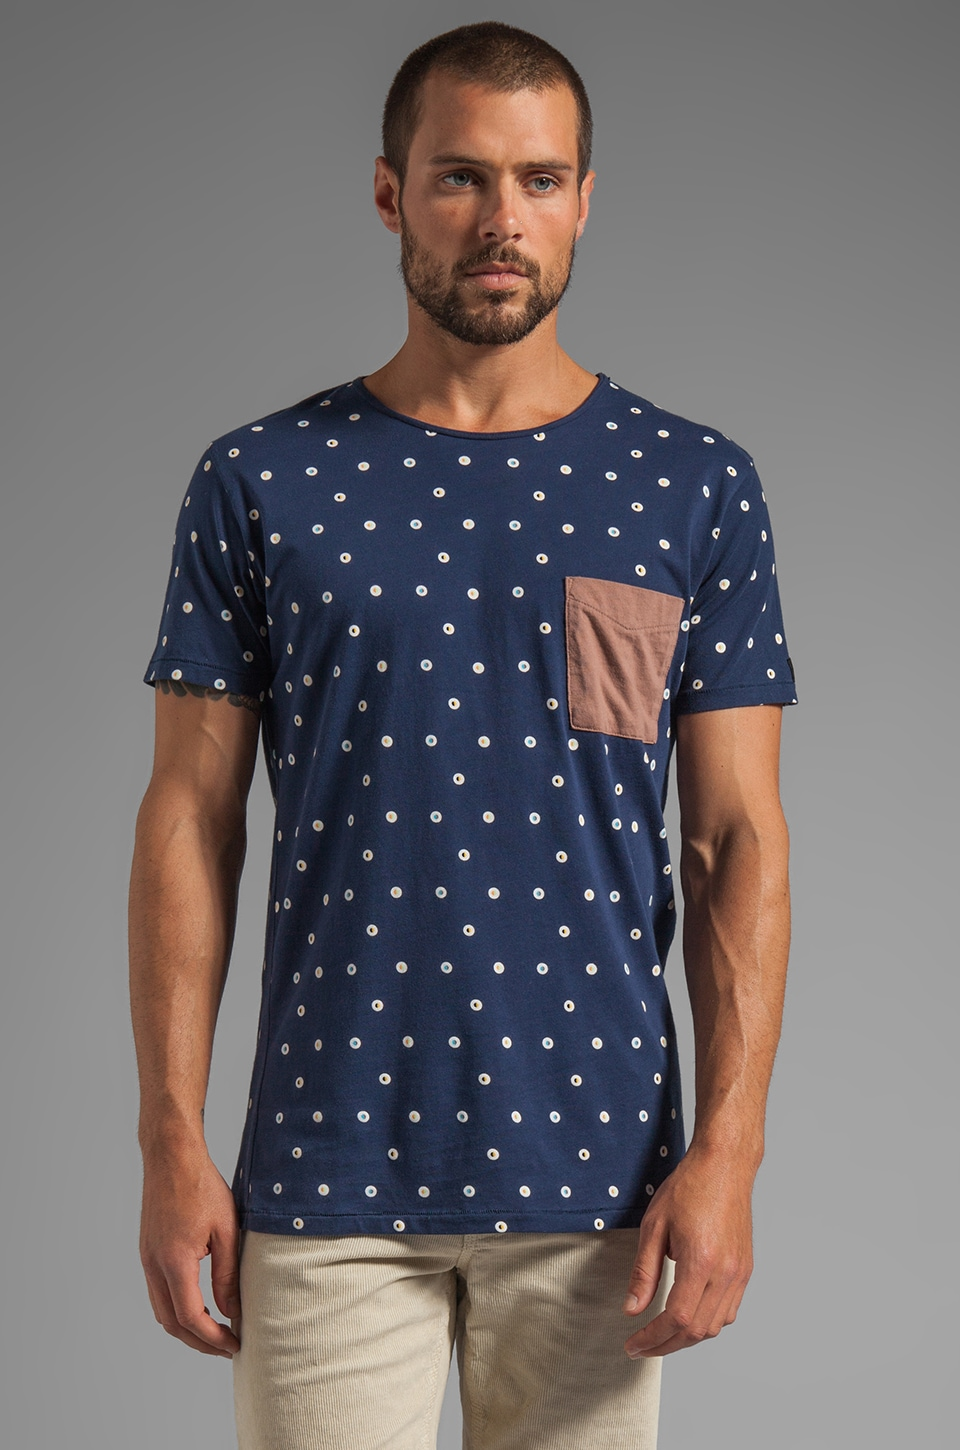 Zanerobe Dandy Tee in Navy